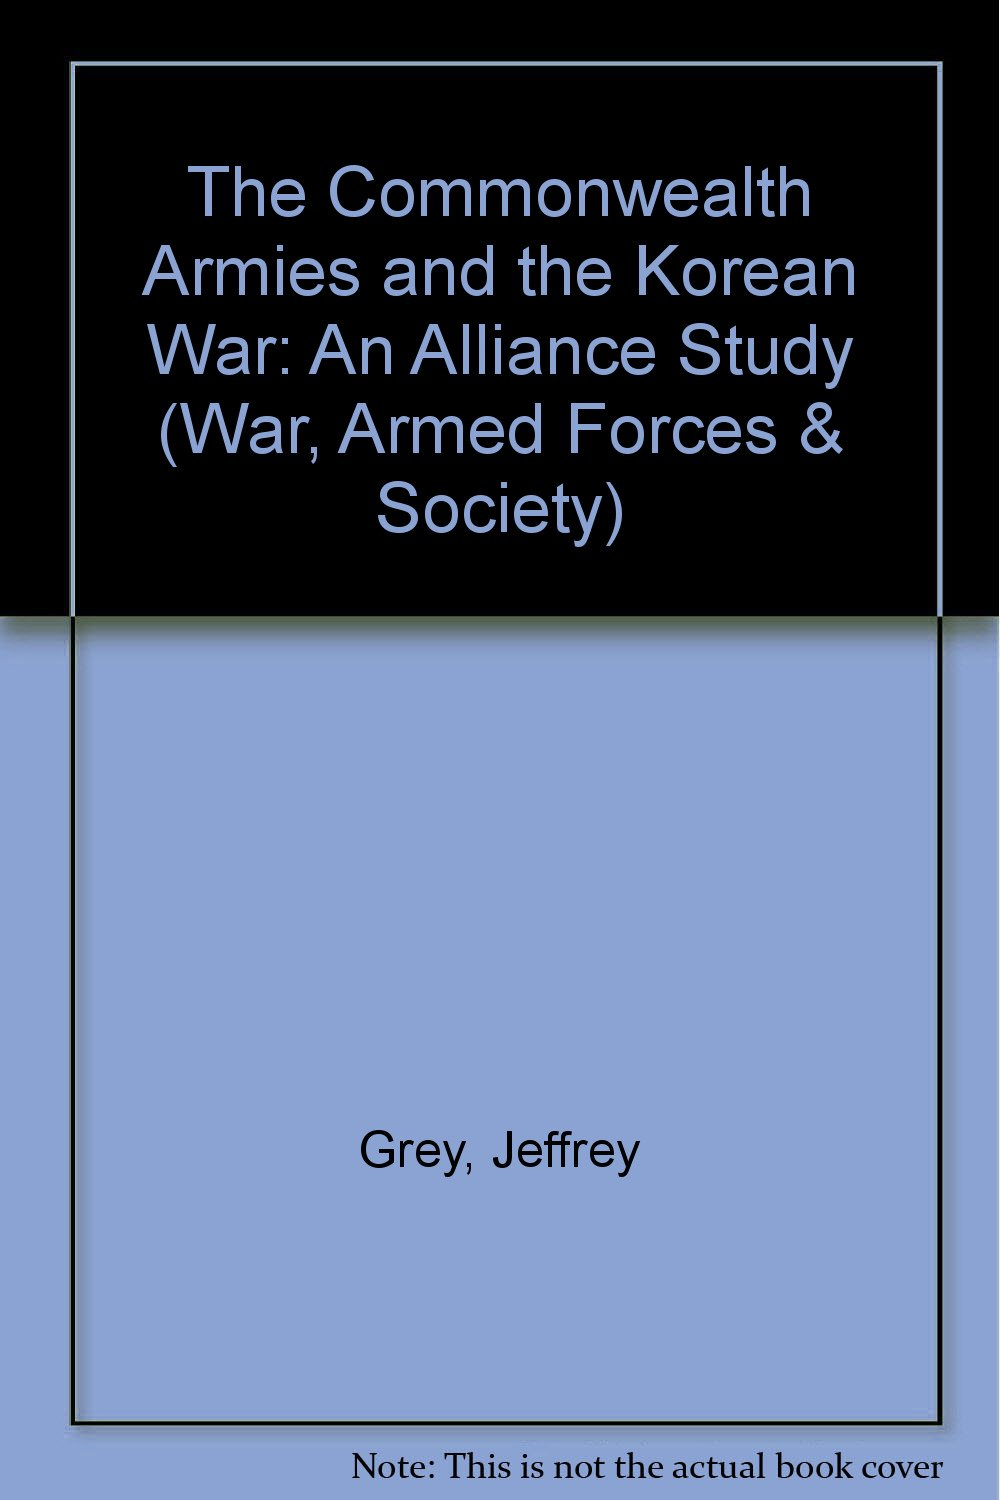 The Commonwealth Armies and the Korean War: An Alliance Study (War, Armed Forces and Society)